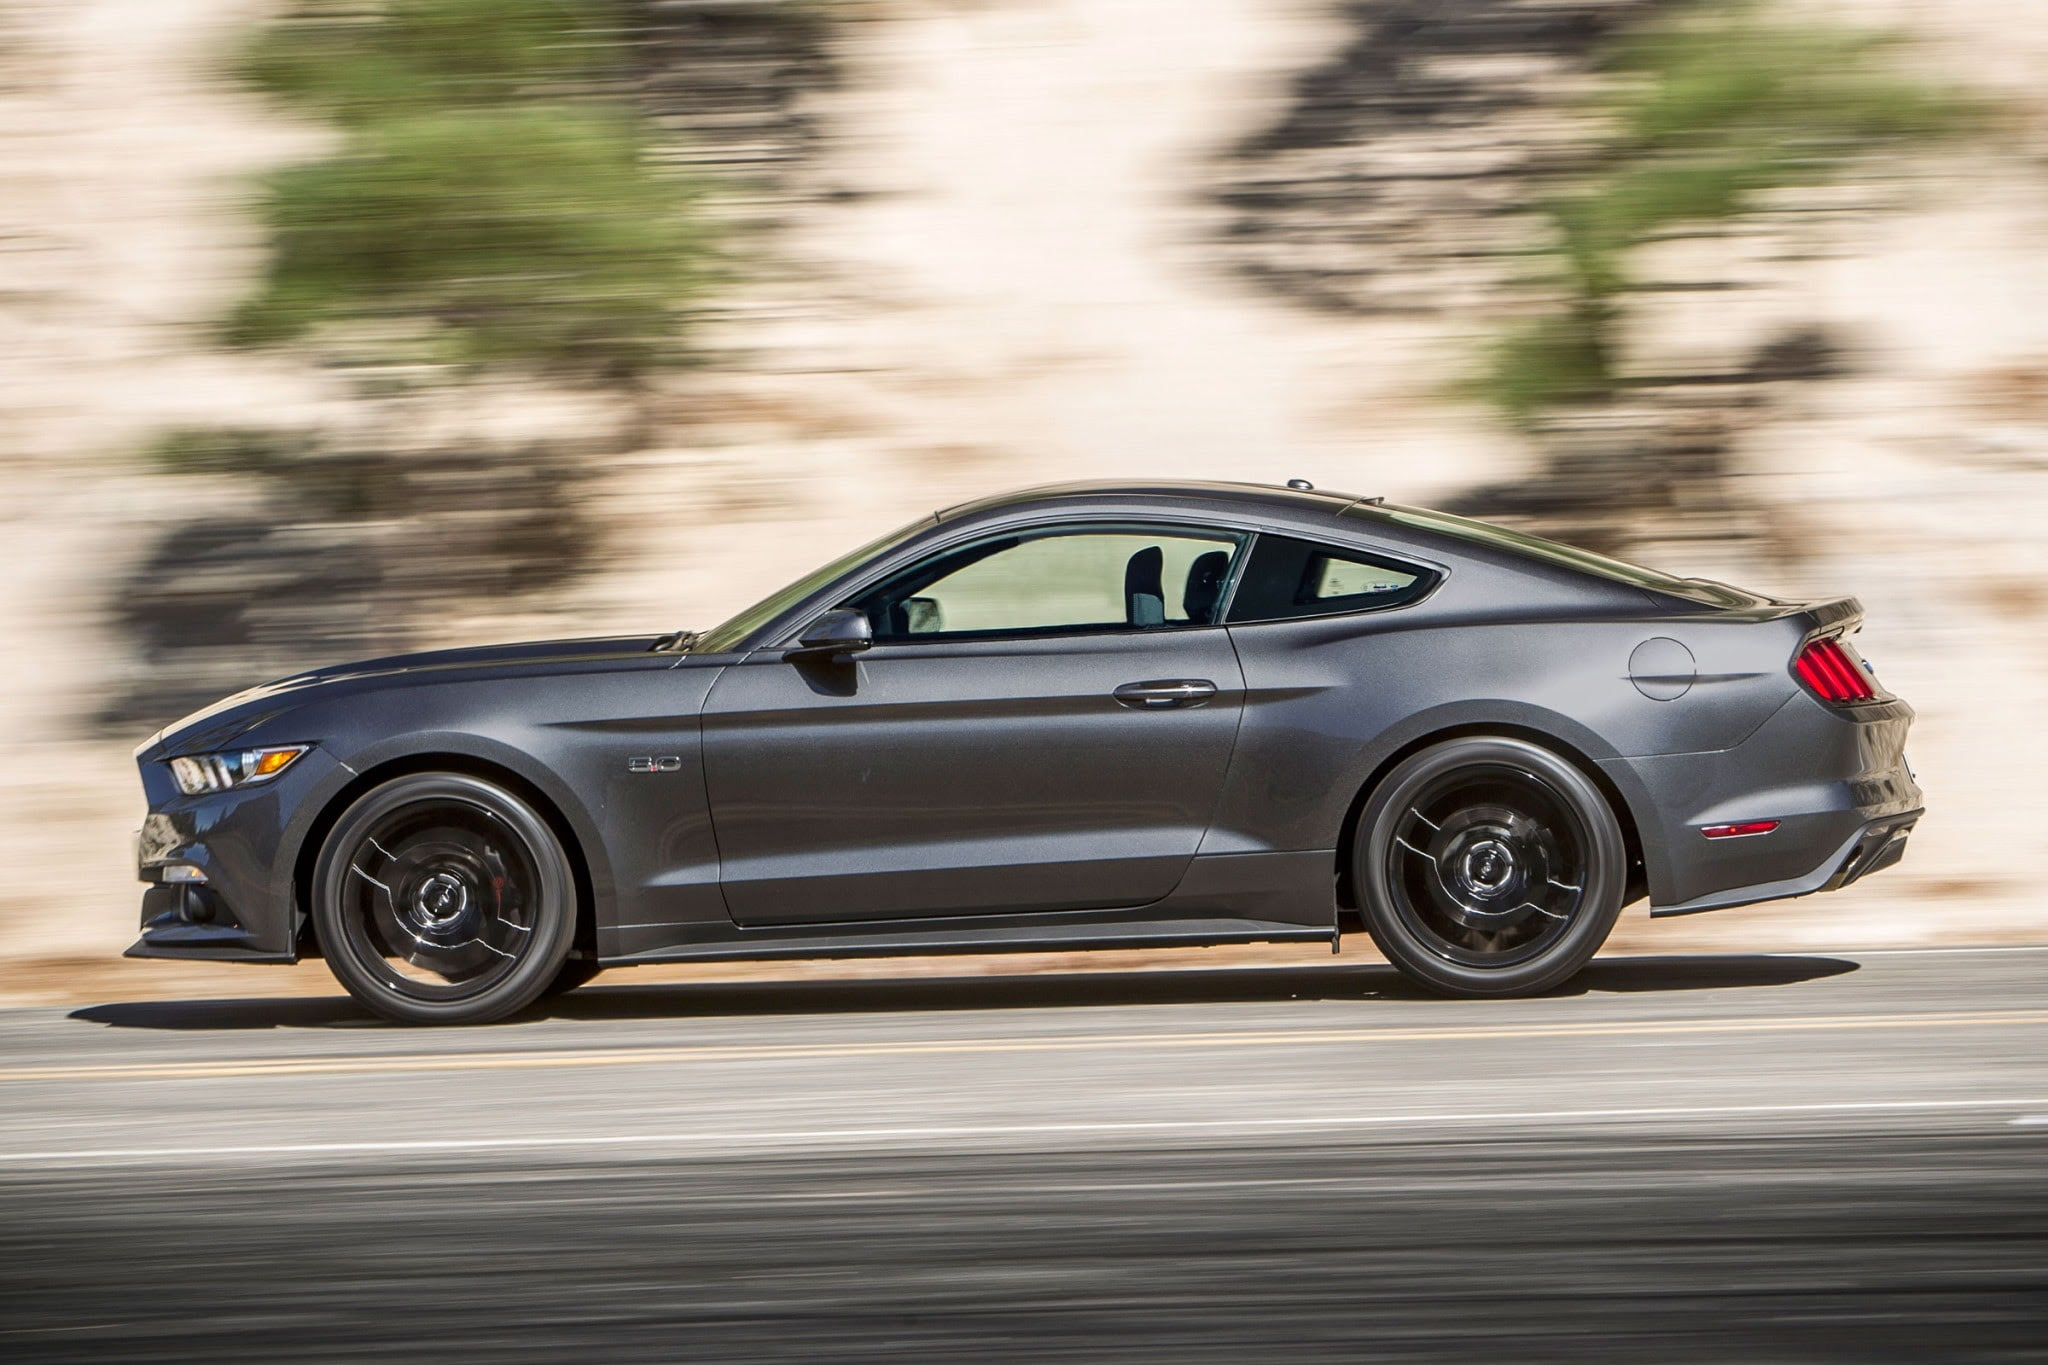 Lease For A Ford Mustang 2015 Prices | 2017 - 2018 Best Cars Reviews